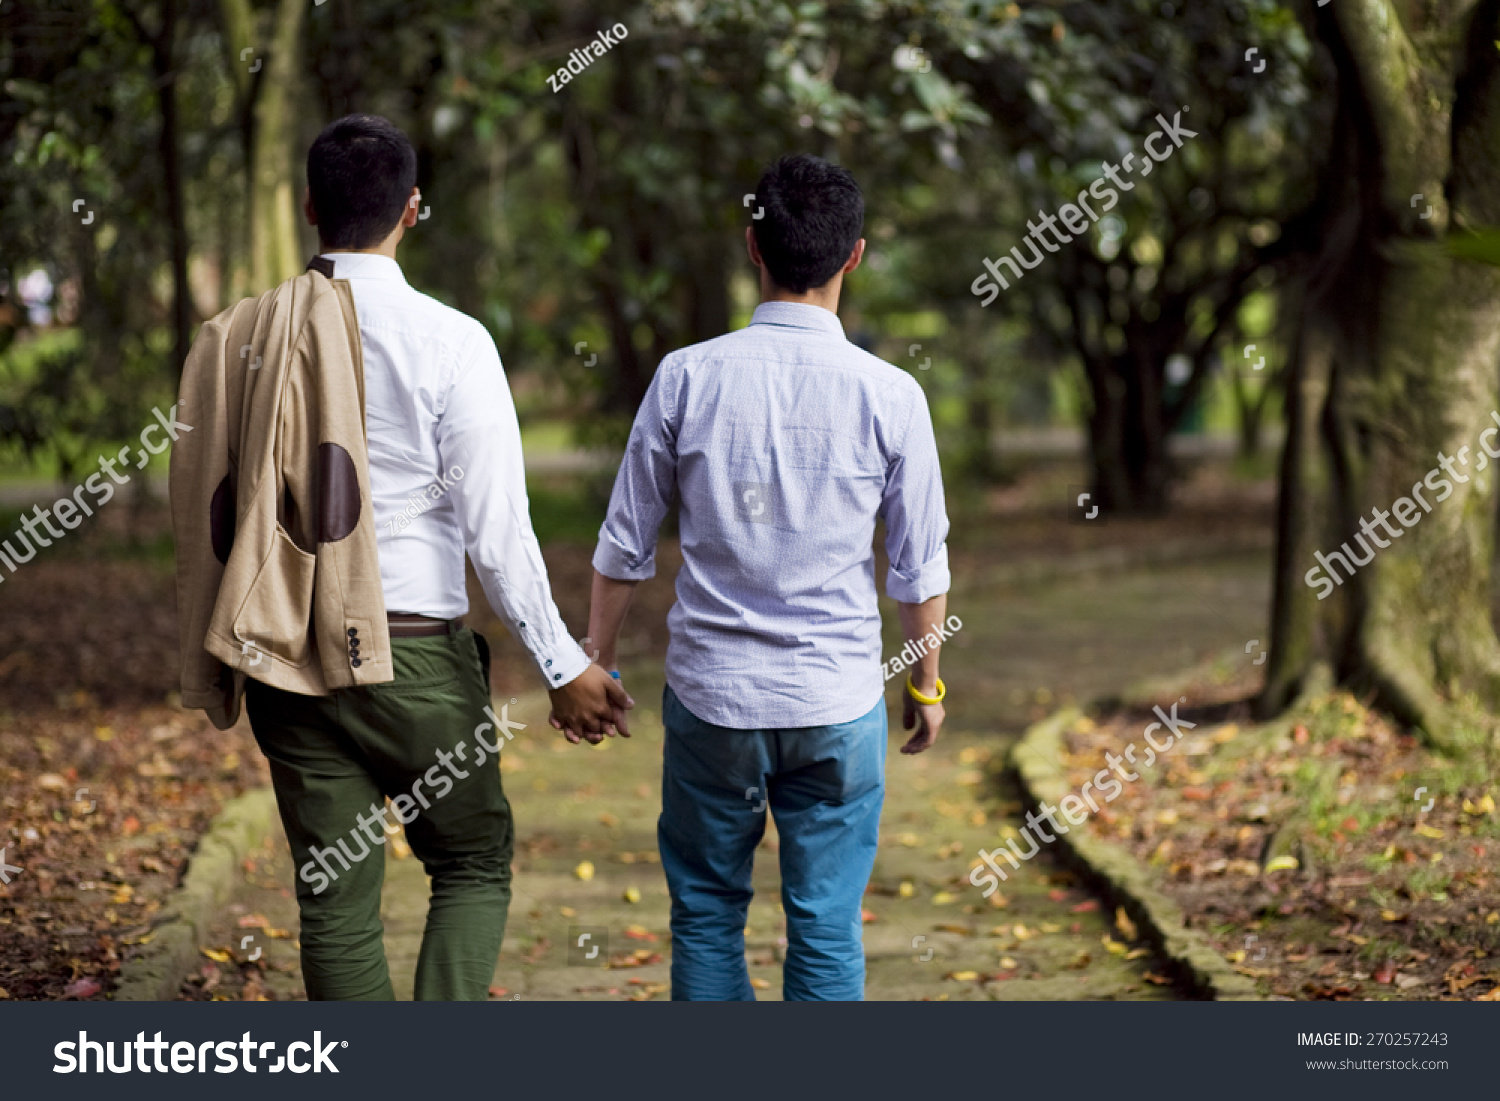 romantic stroll in - photo #42